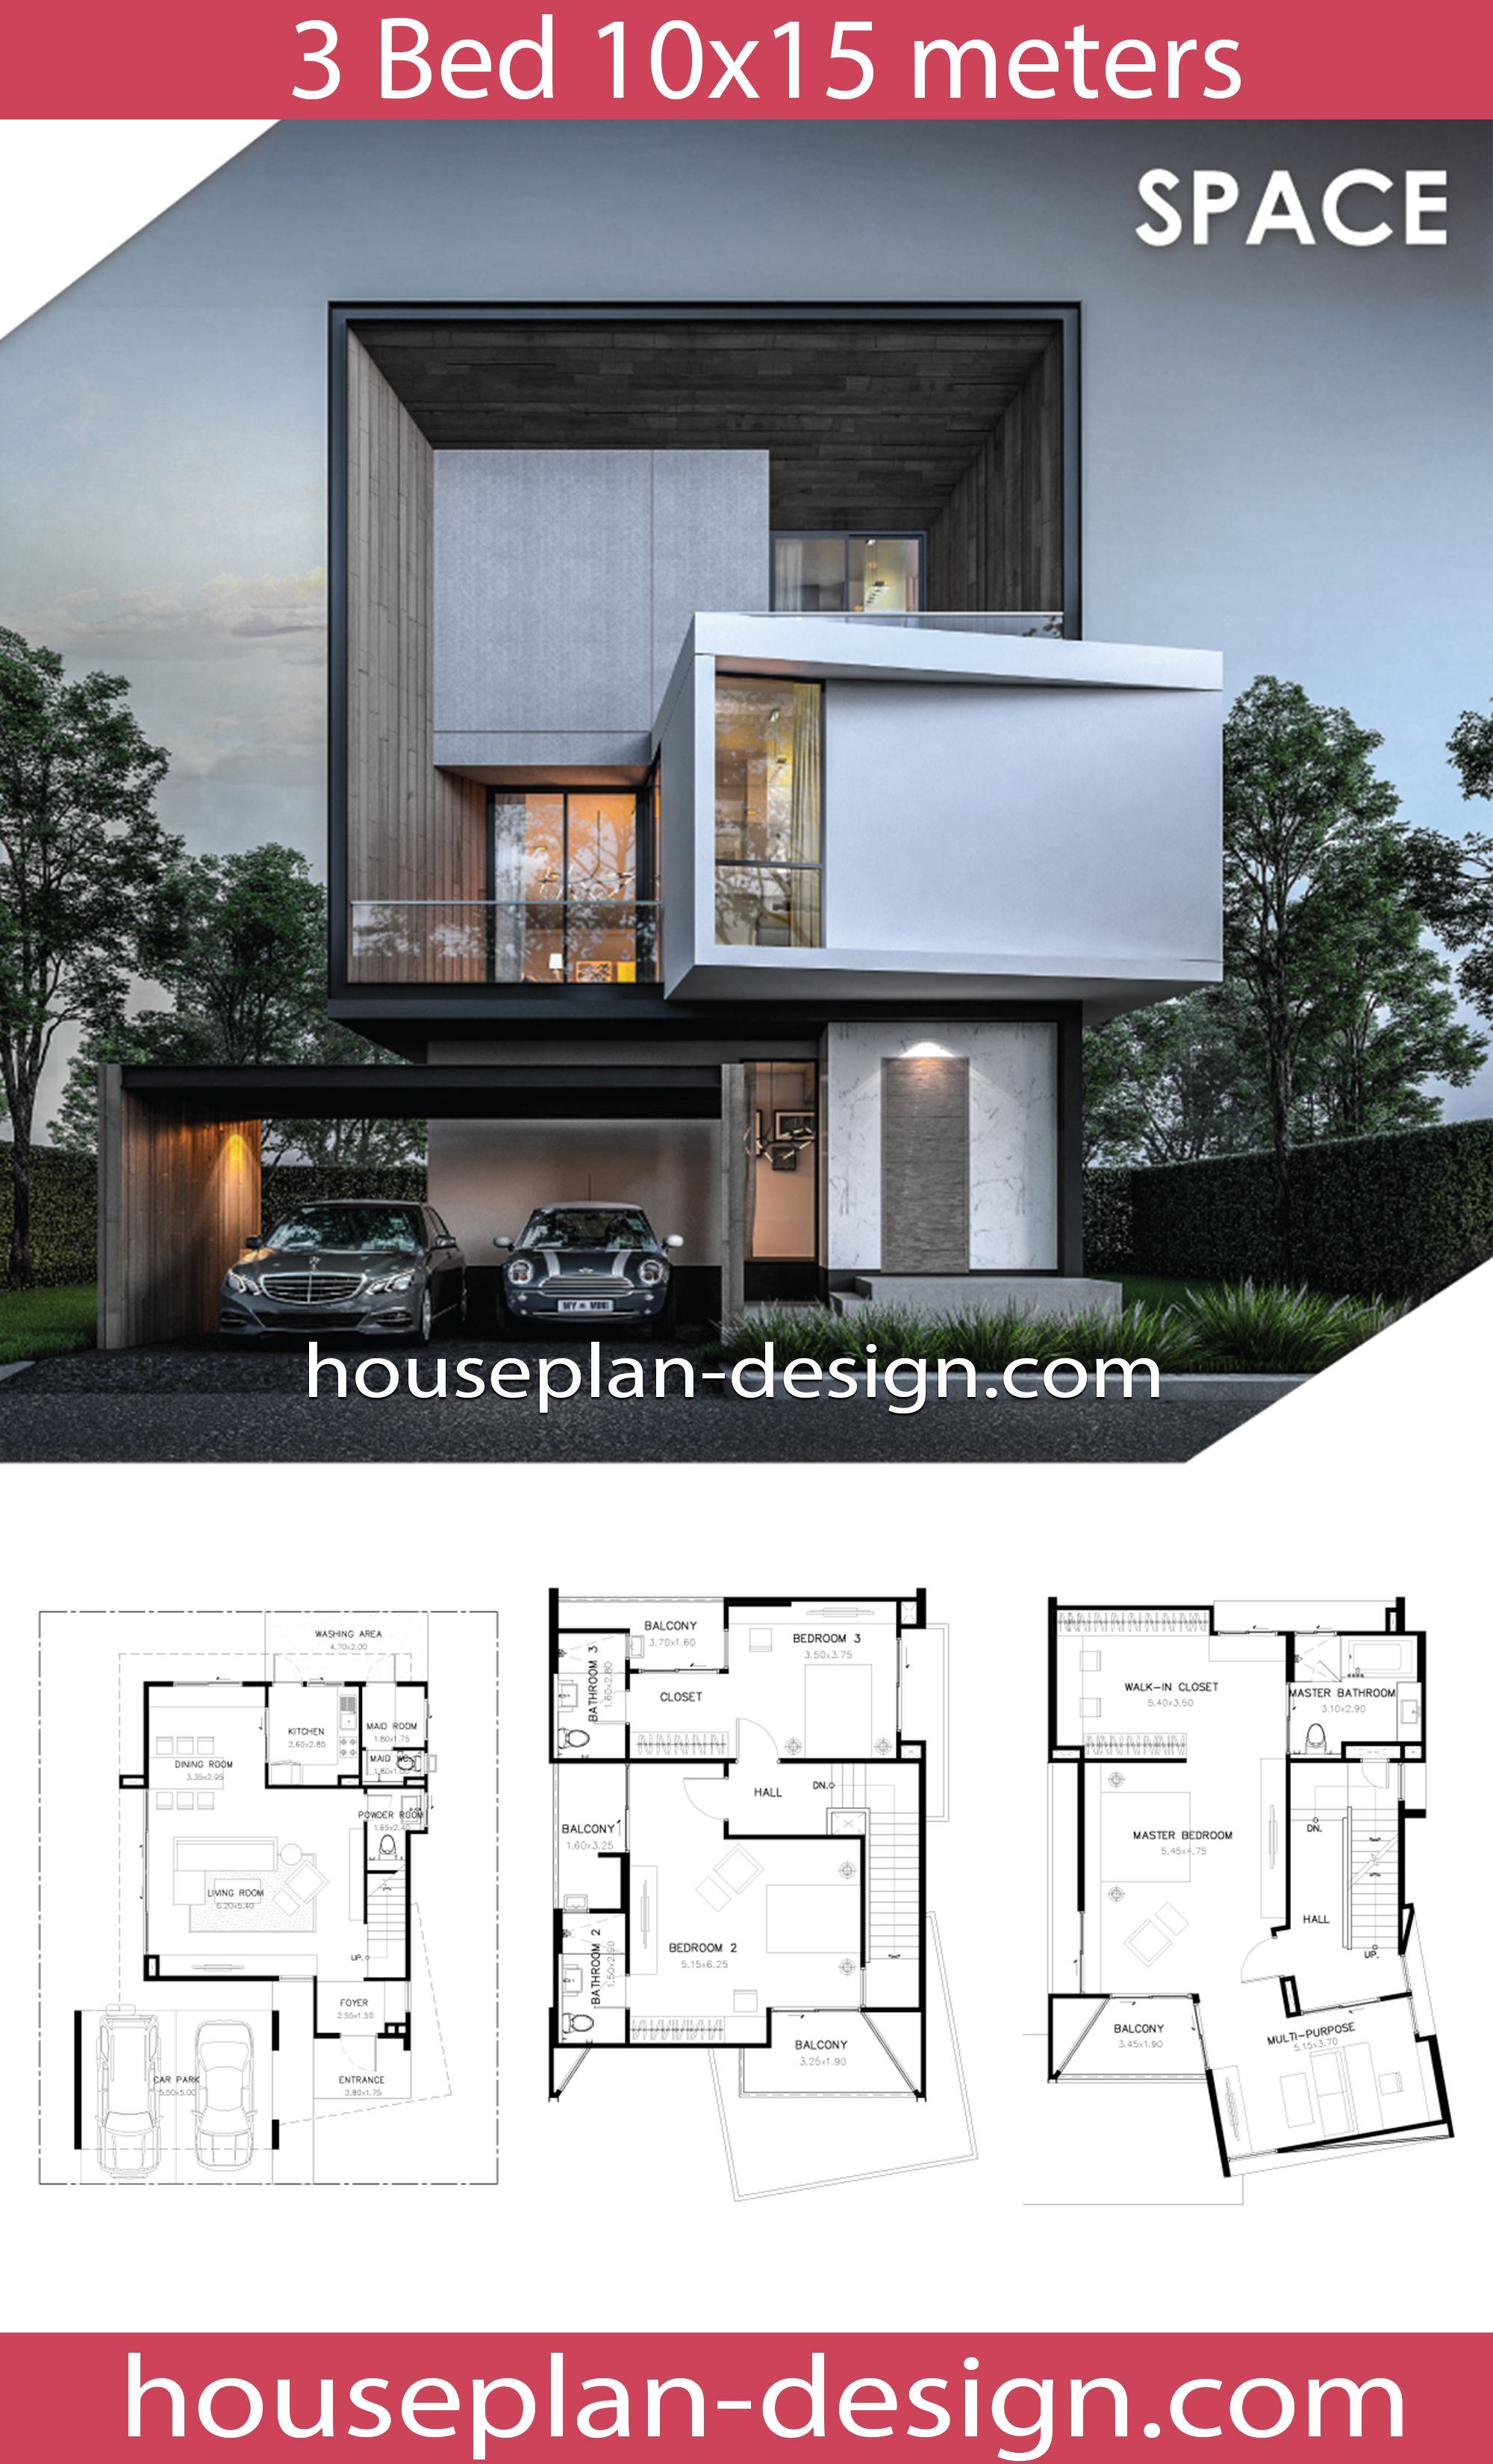 House Plan Design Modern House Plan 10x15m Modern House Plan Modern Beach House Contemporary House Design